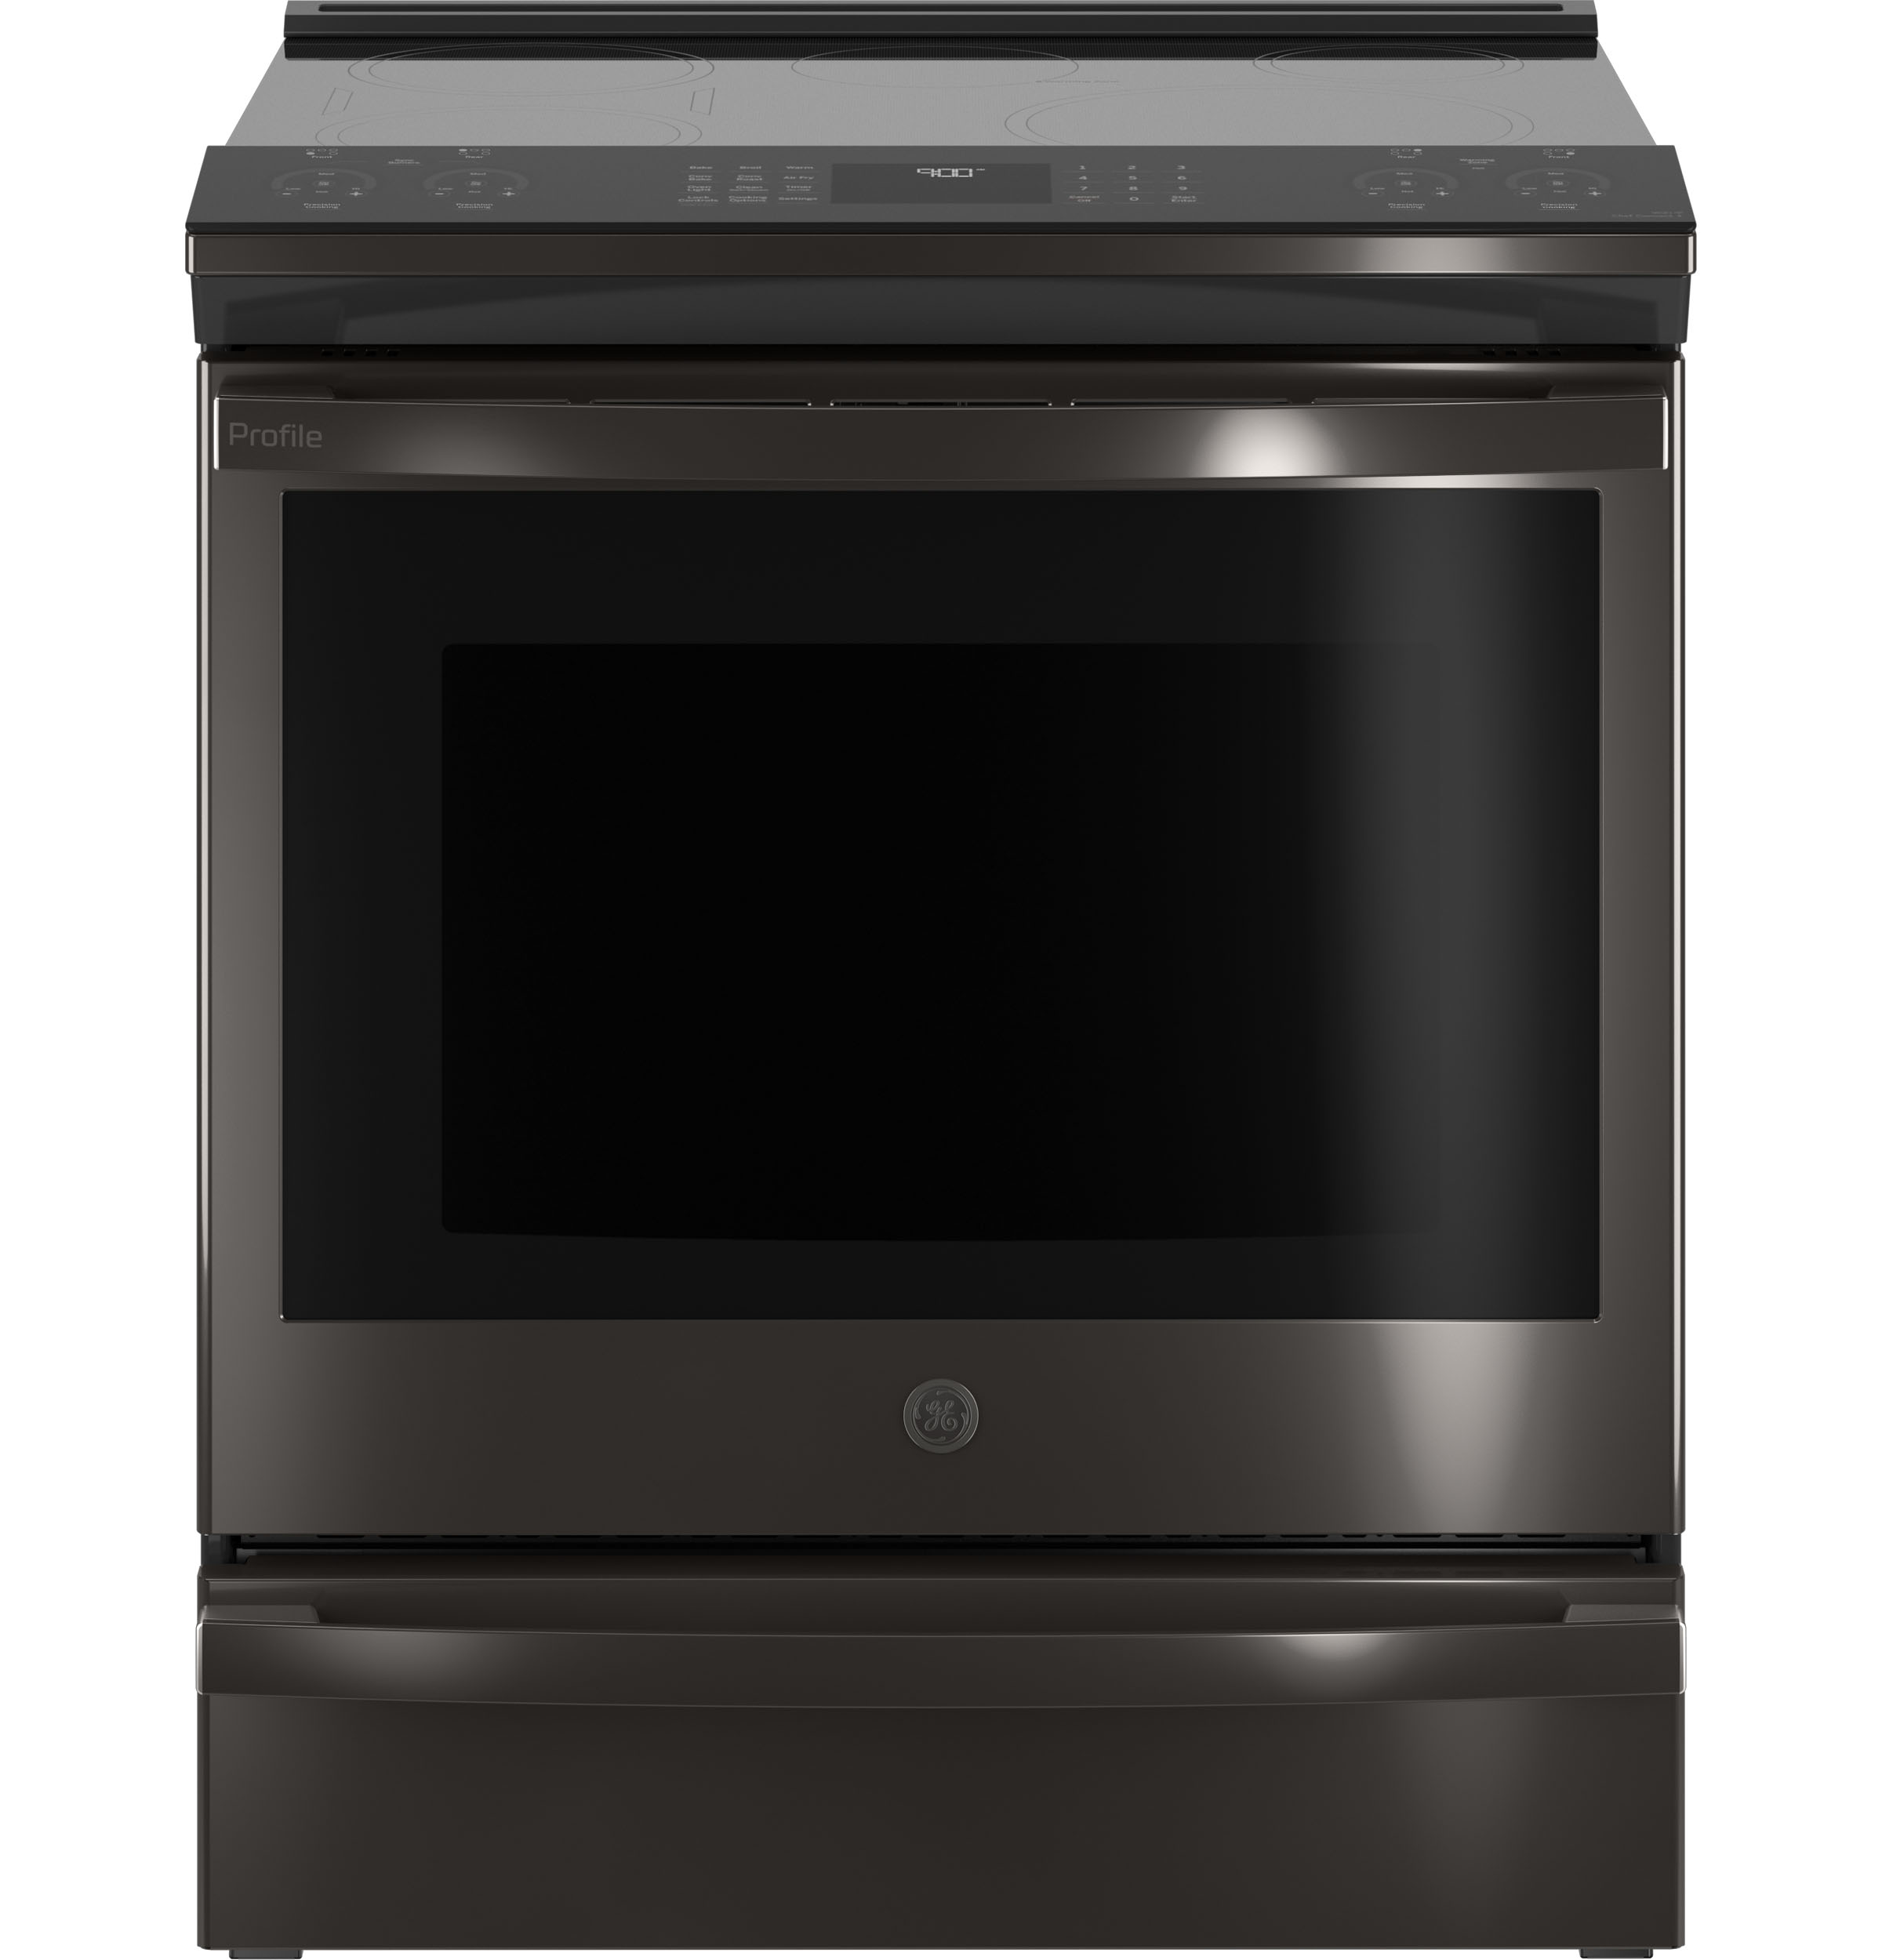 "Cafe GE Profile™ 30"" Smart Slide-In Front-Control Induction and Convection Range with No Preheat Air Fry"